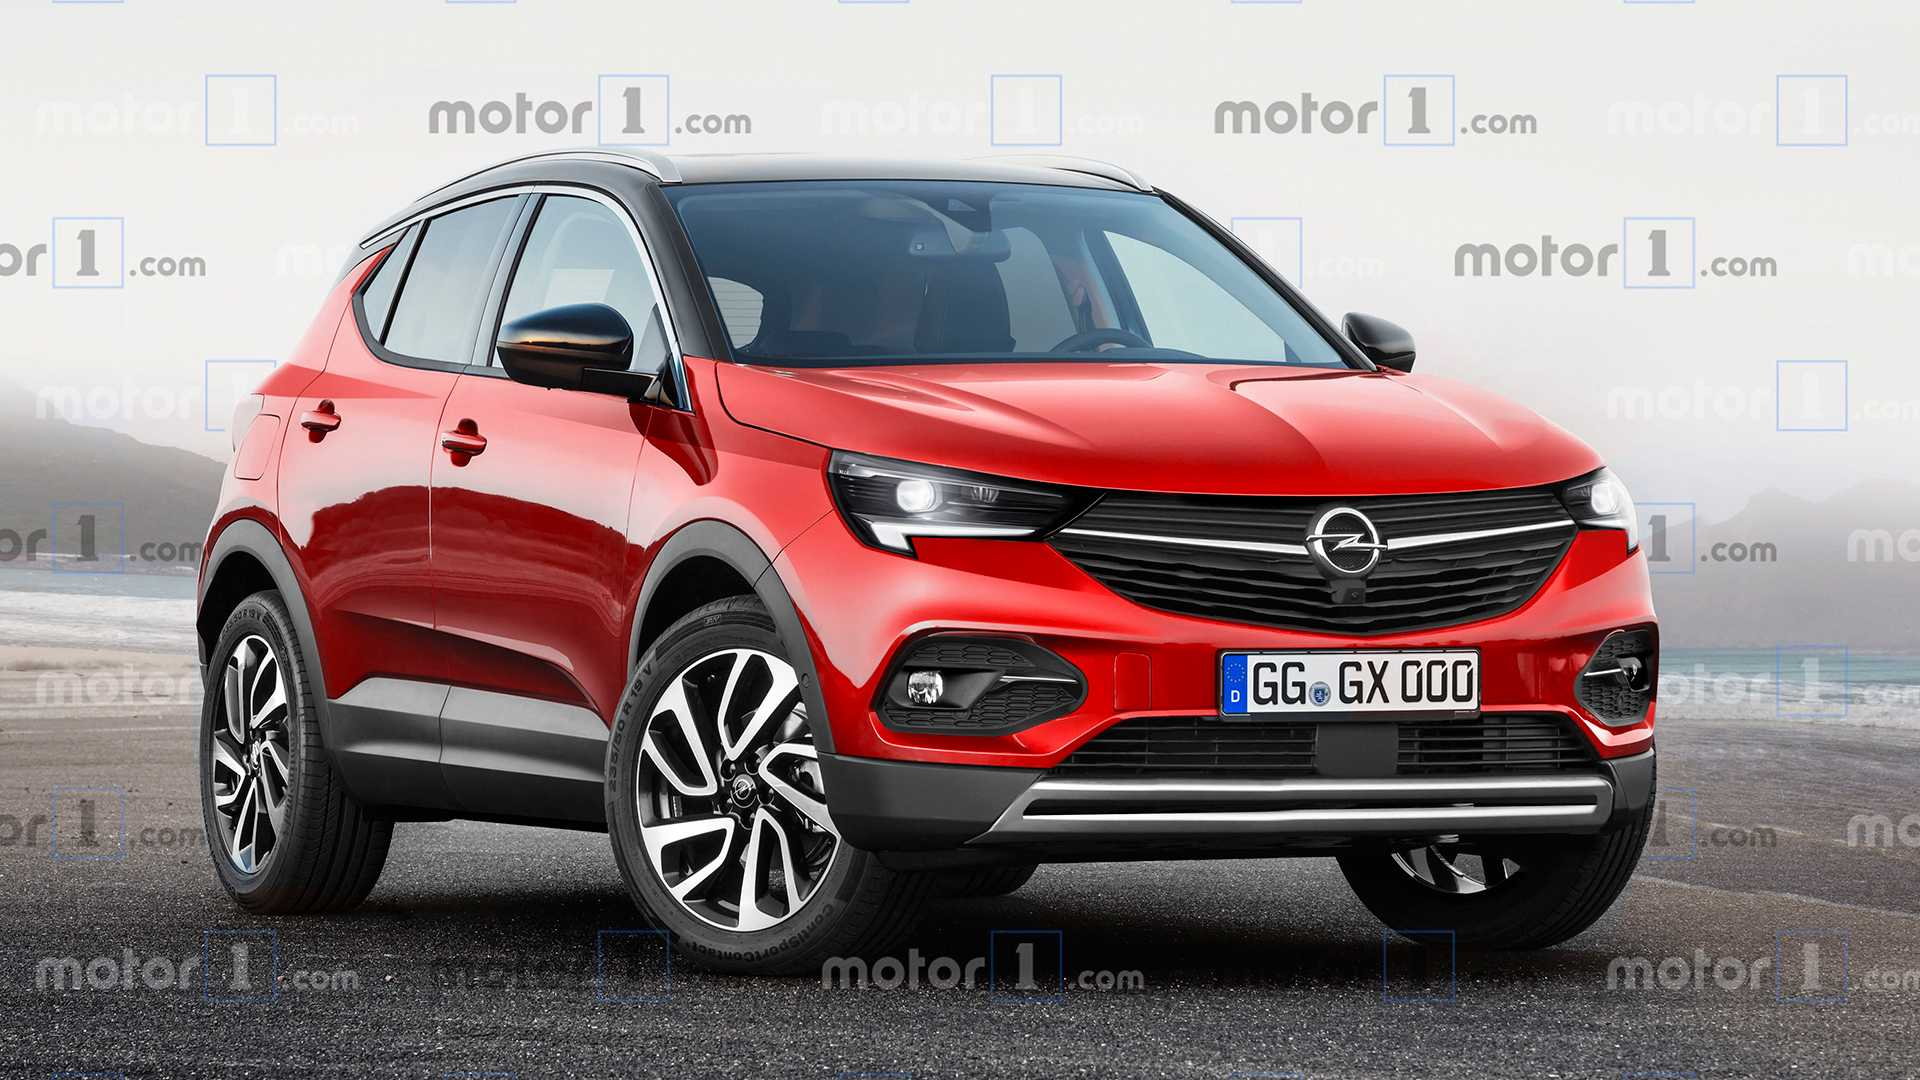 45 All New Der Neue Opel Mokka X 2020 New Model And Performance